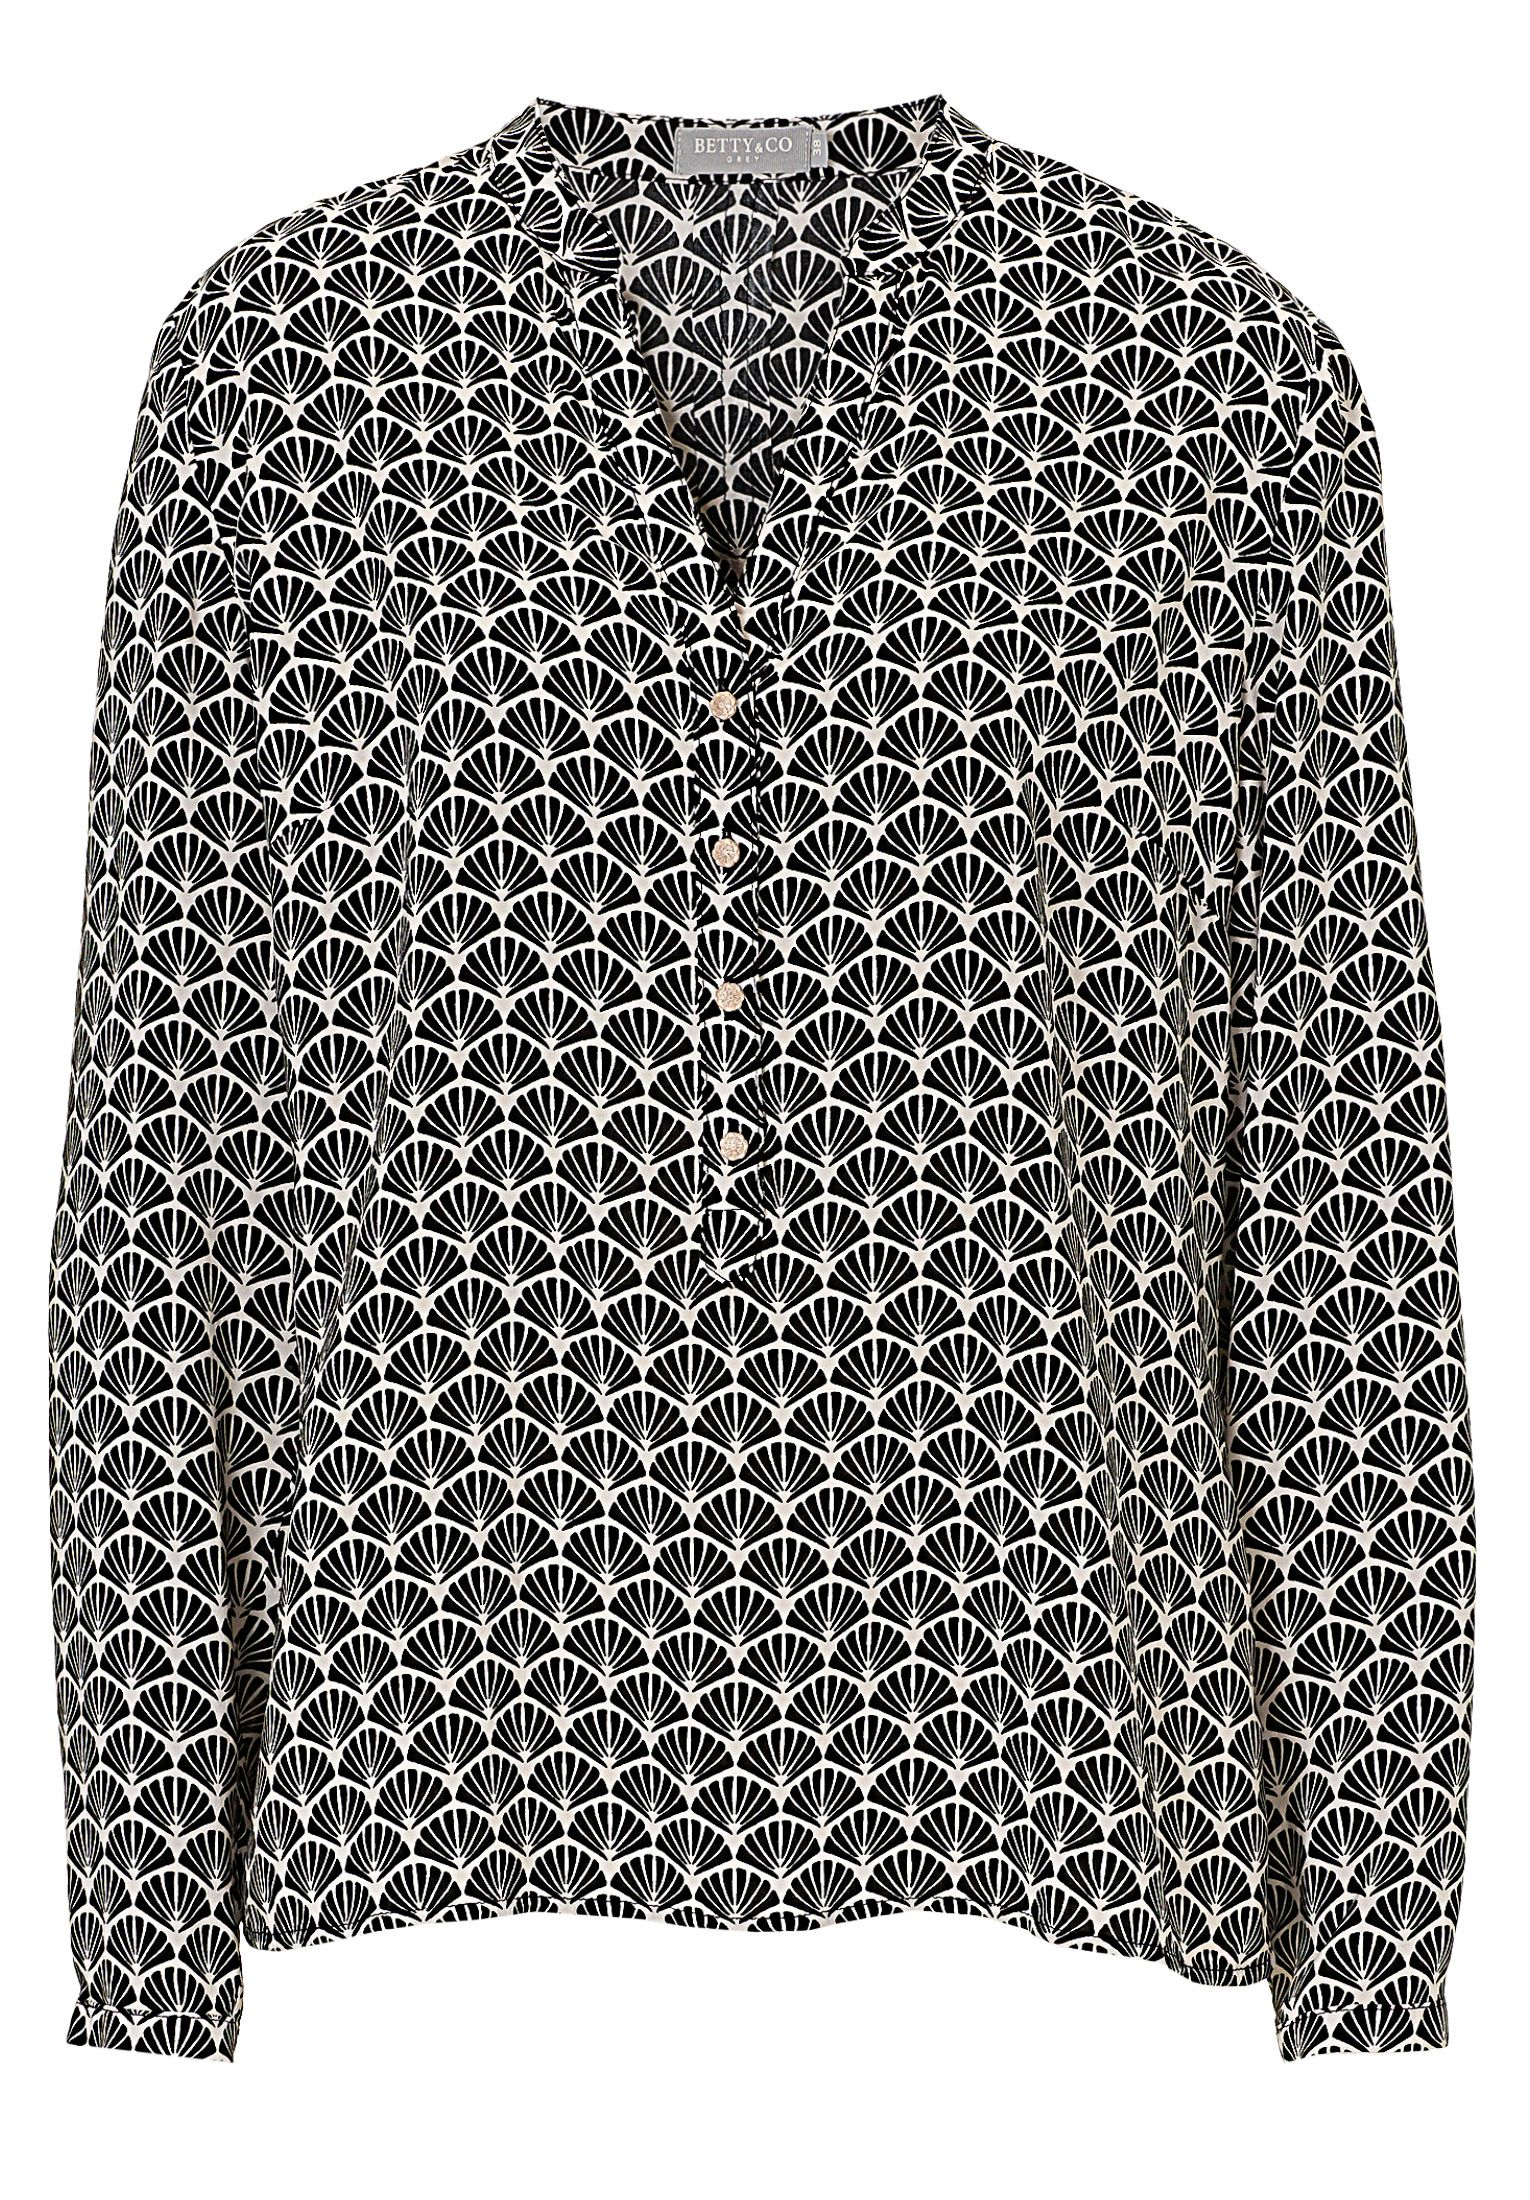 Betty & Co. Printed blouse, Black